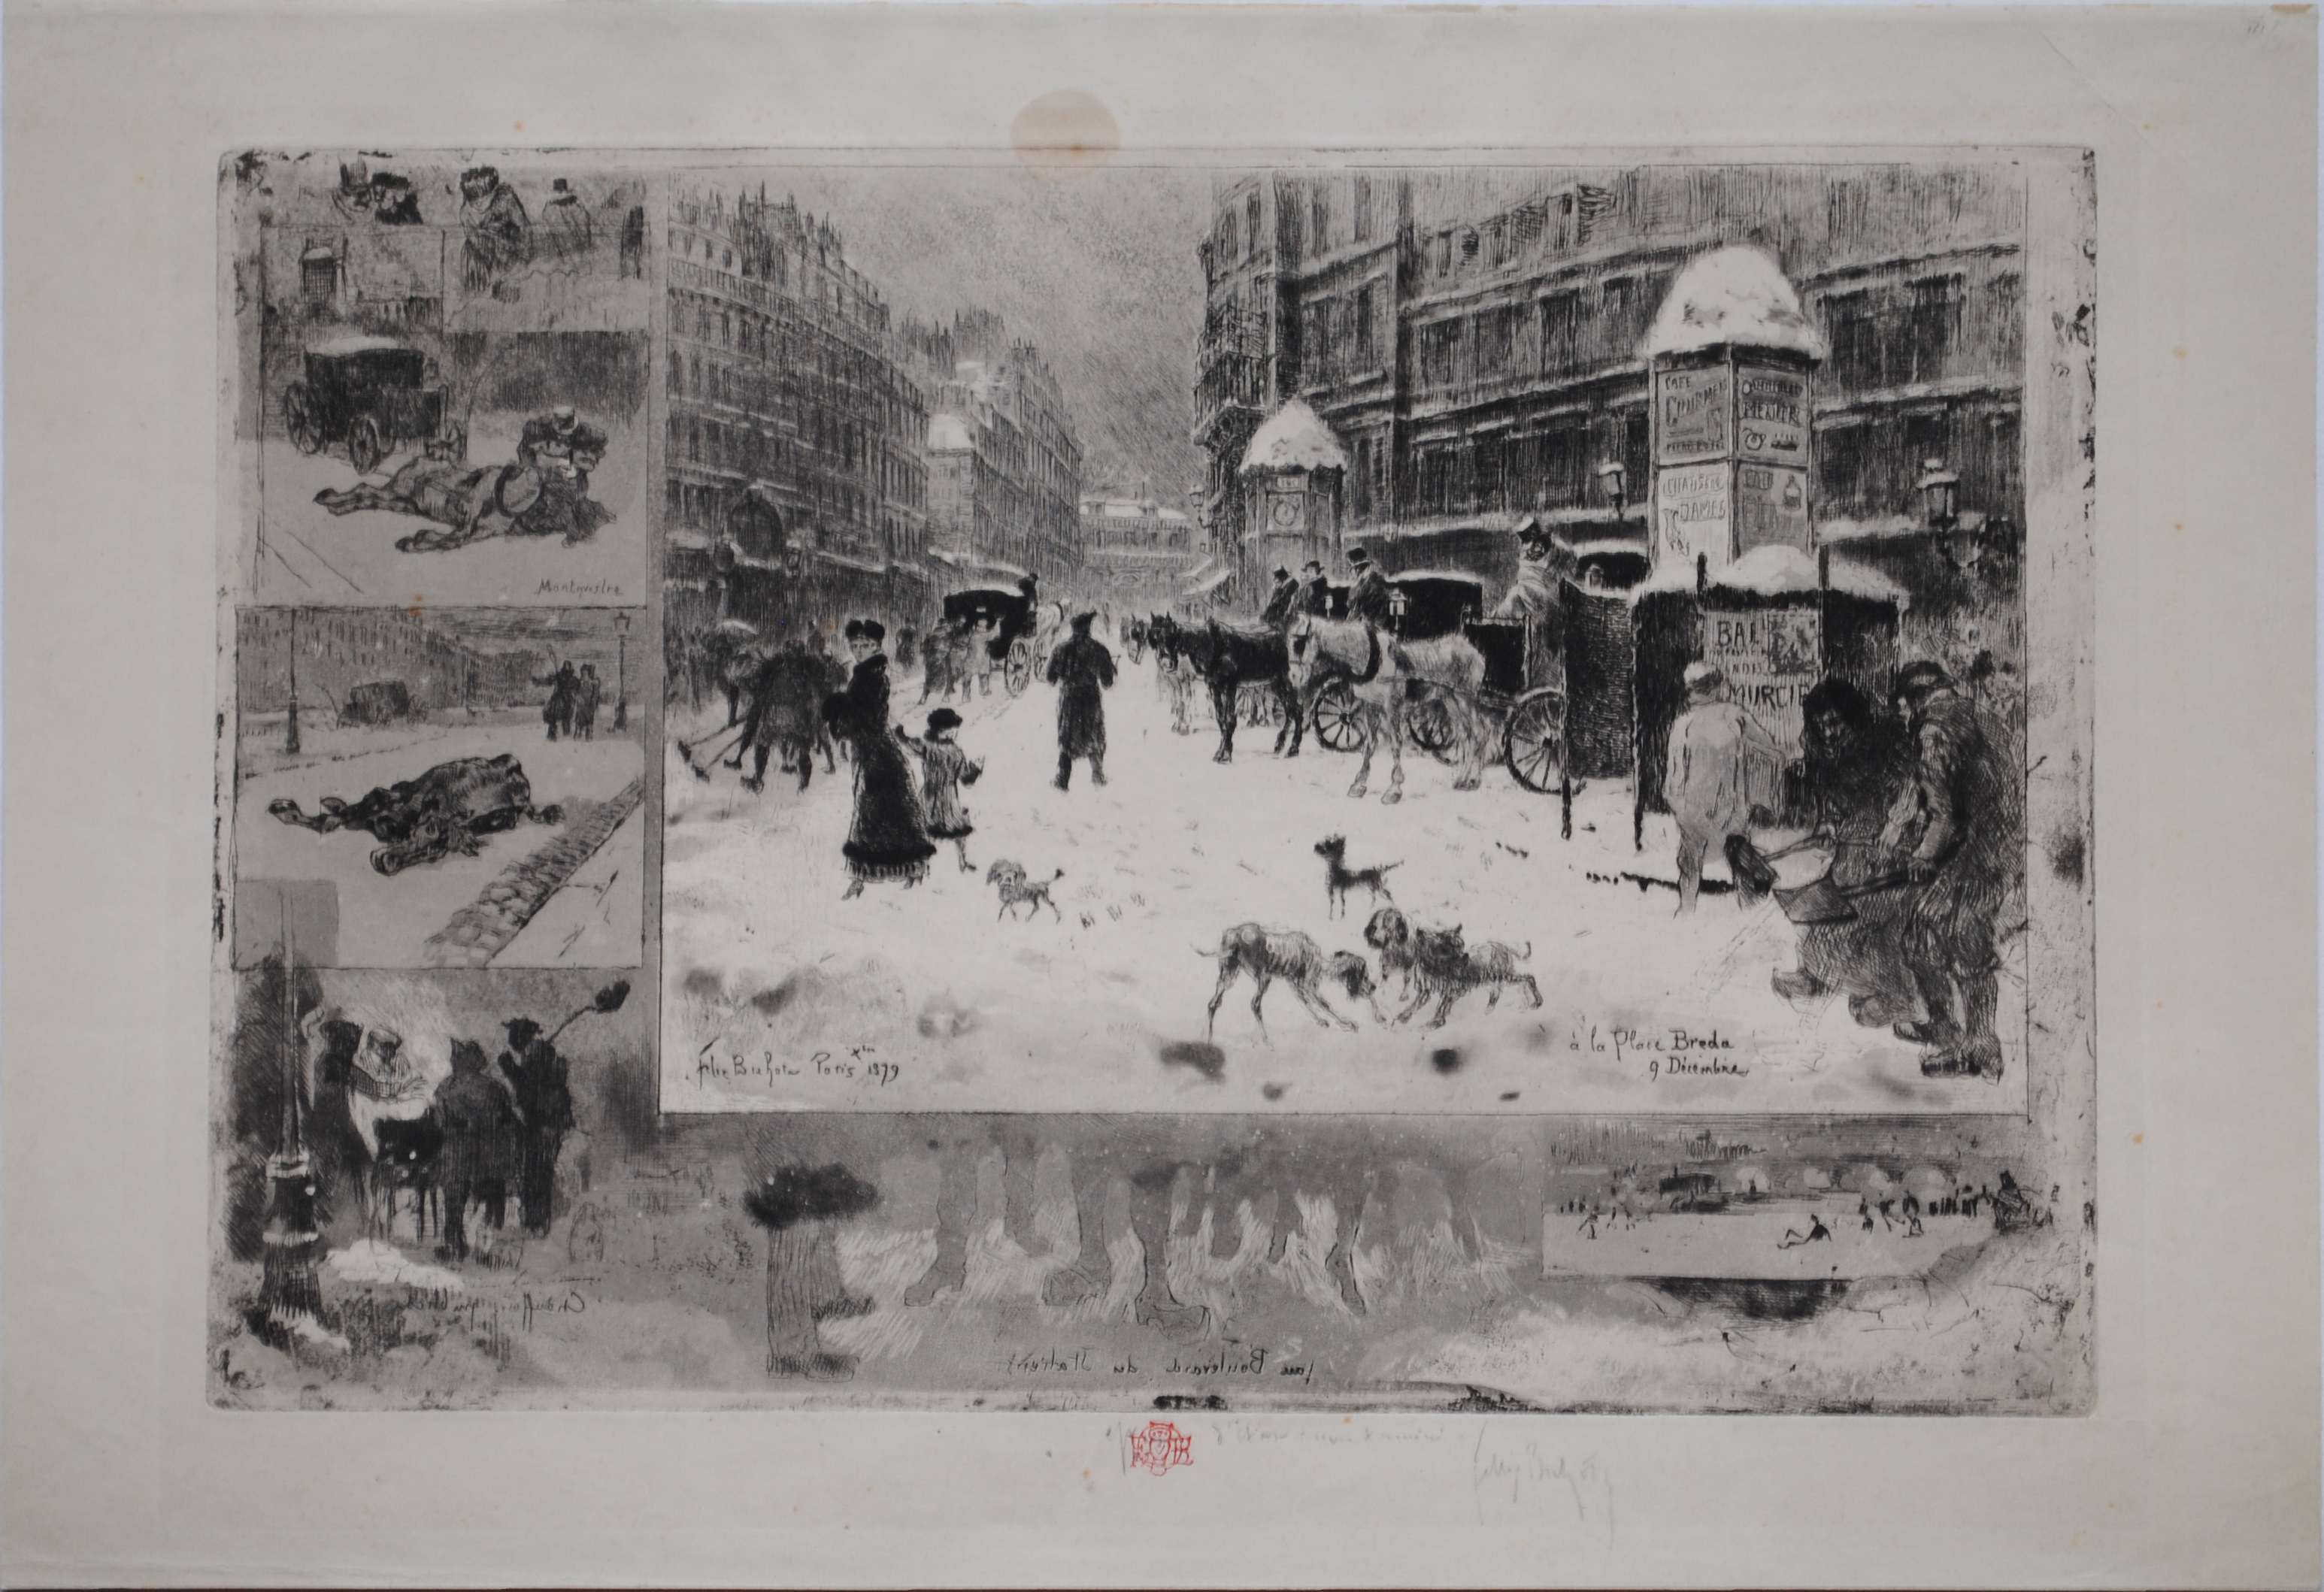 Felix Buhot, L'Hiver à Paris, etching and aquatint, 1879